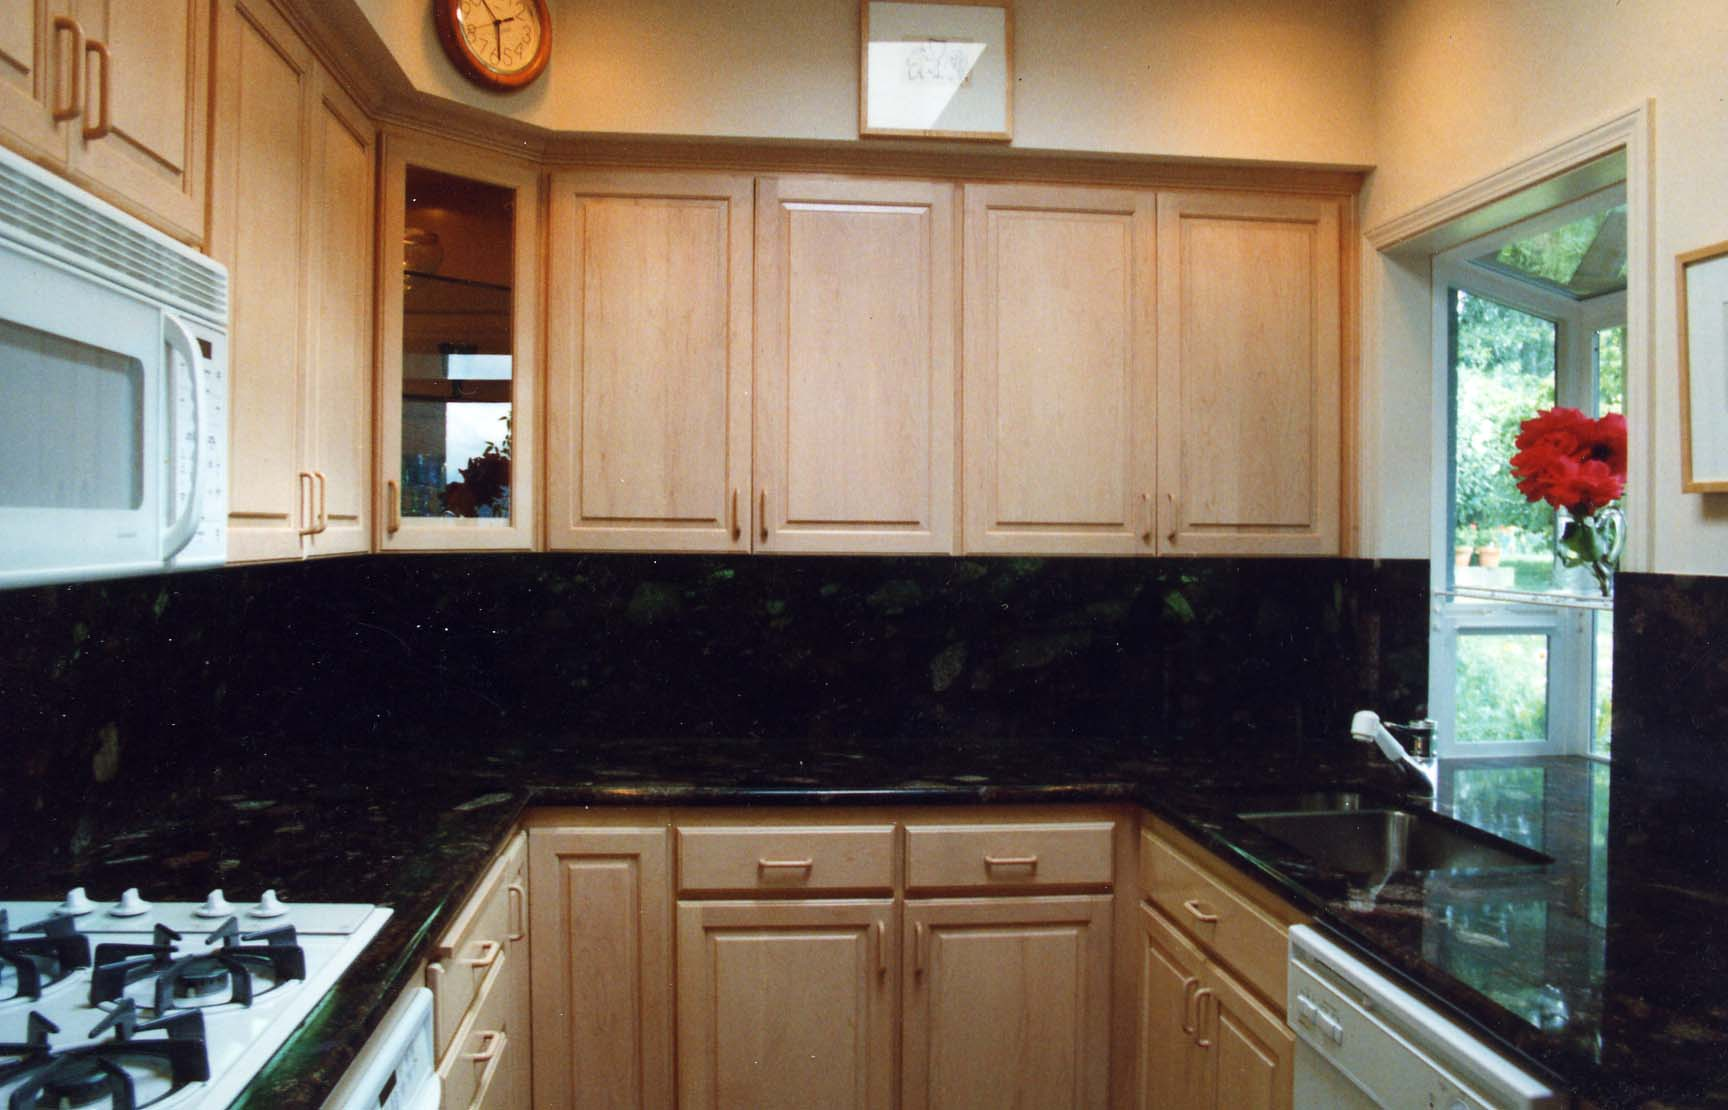 Backsplash Ideas Black Granite Countertops Maple Cabinets | Bar ...